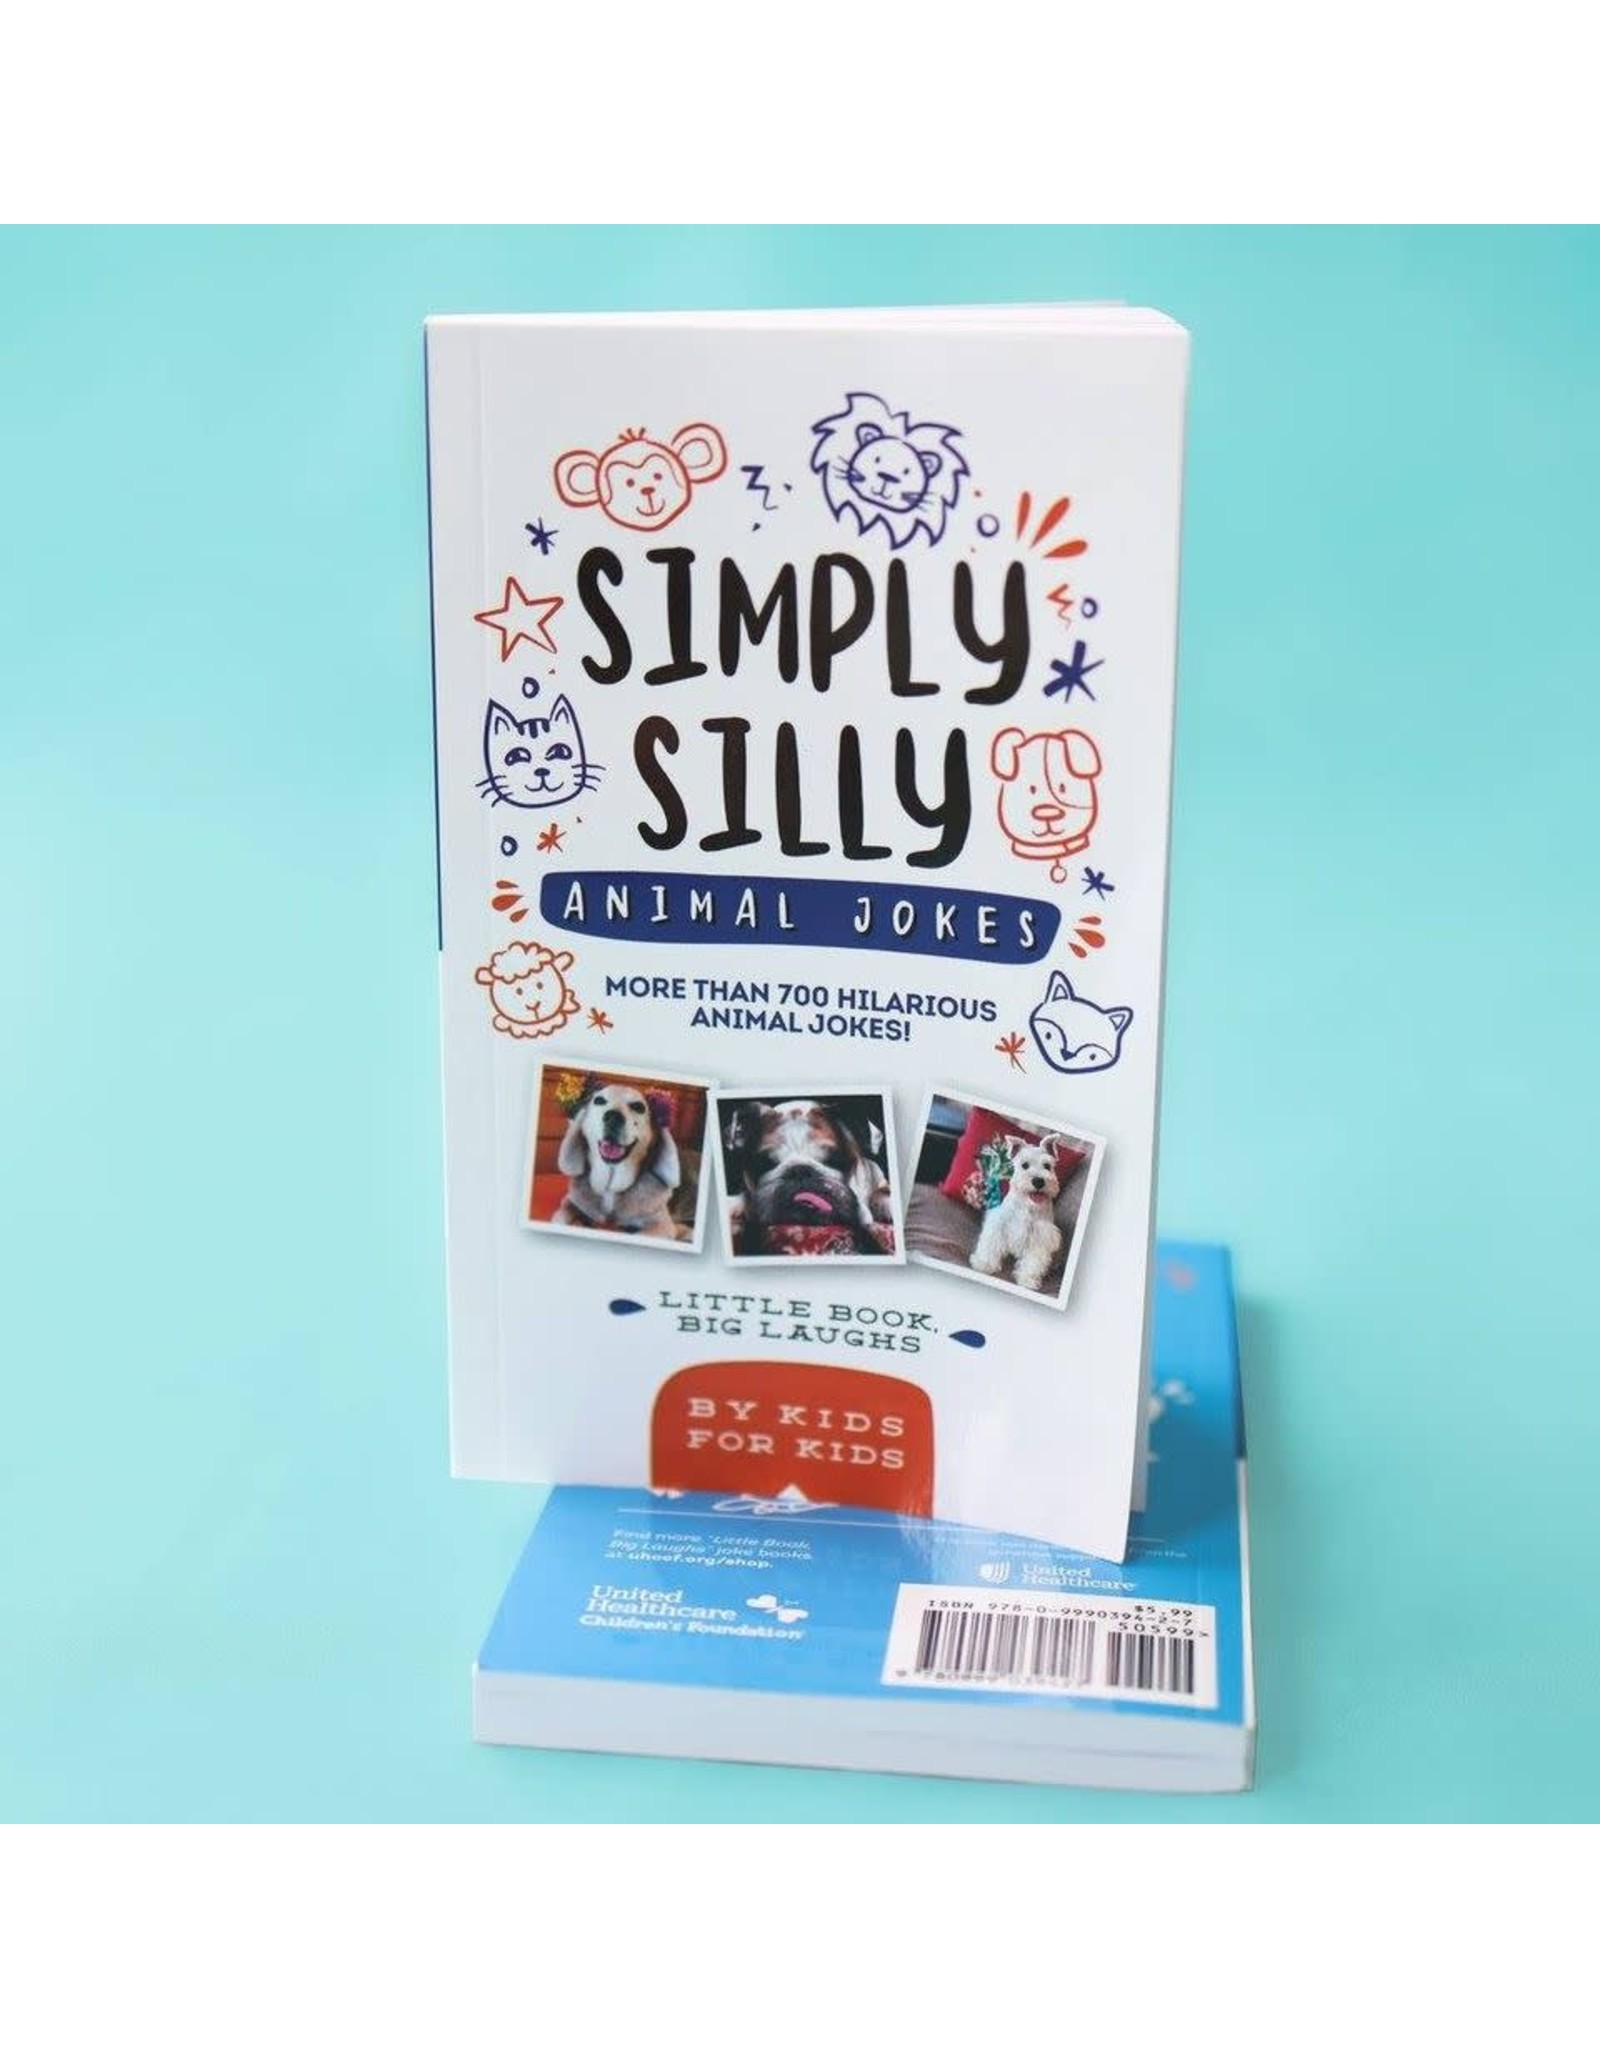 Little Book, Big Laughs Simply Silly Animal Jokes Joke Book